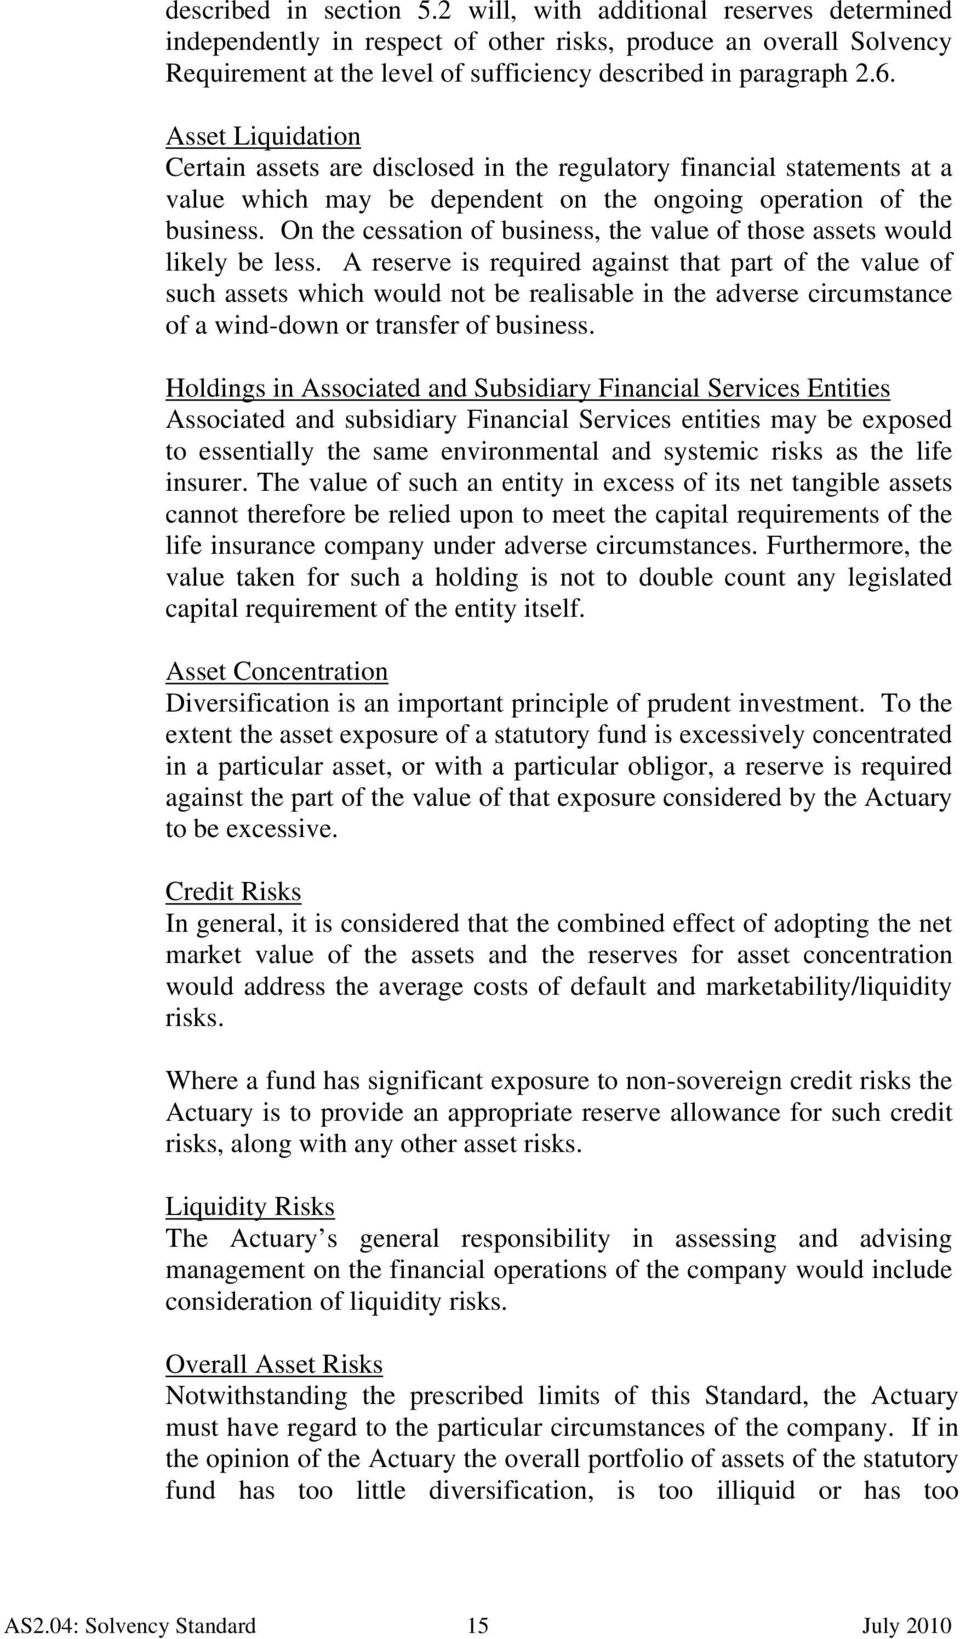 Asset Liquidation Certain assets are disclosed in the regulatory financial statements at a value which may be dependent on the ongoing operation of the business.